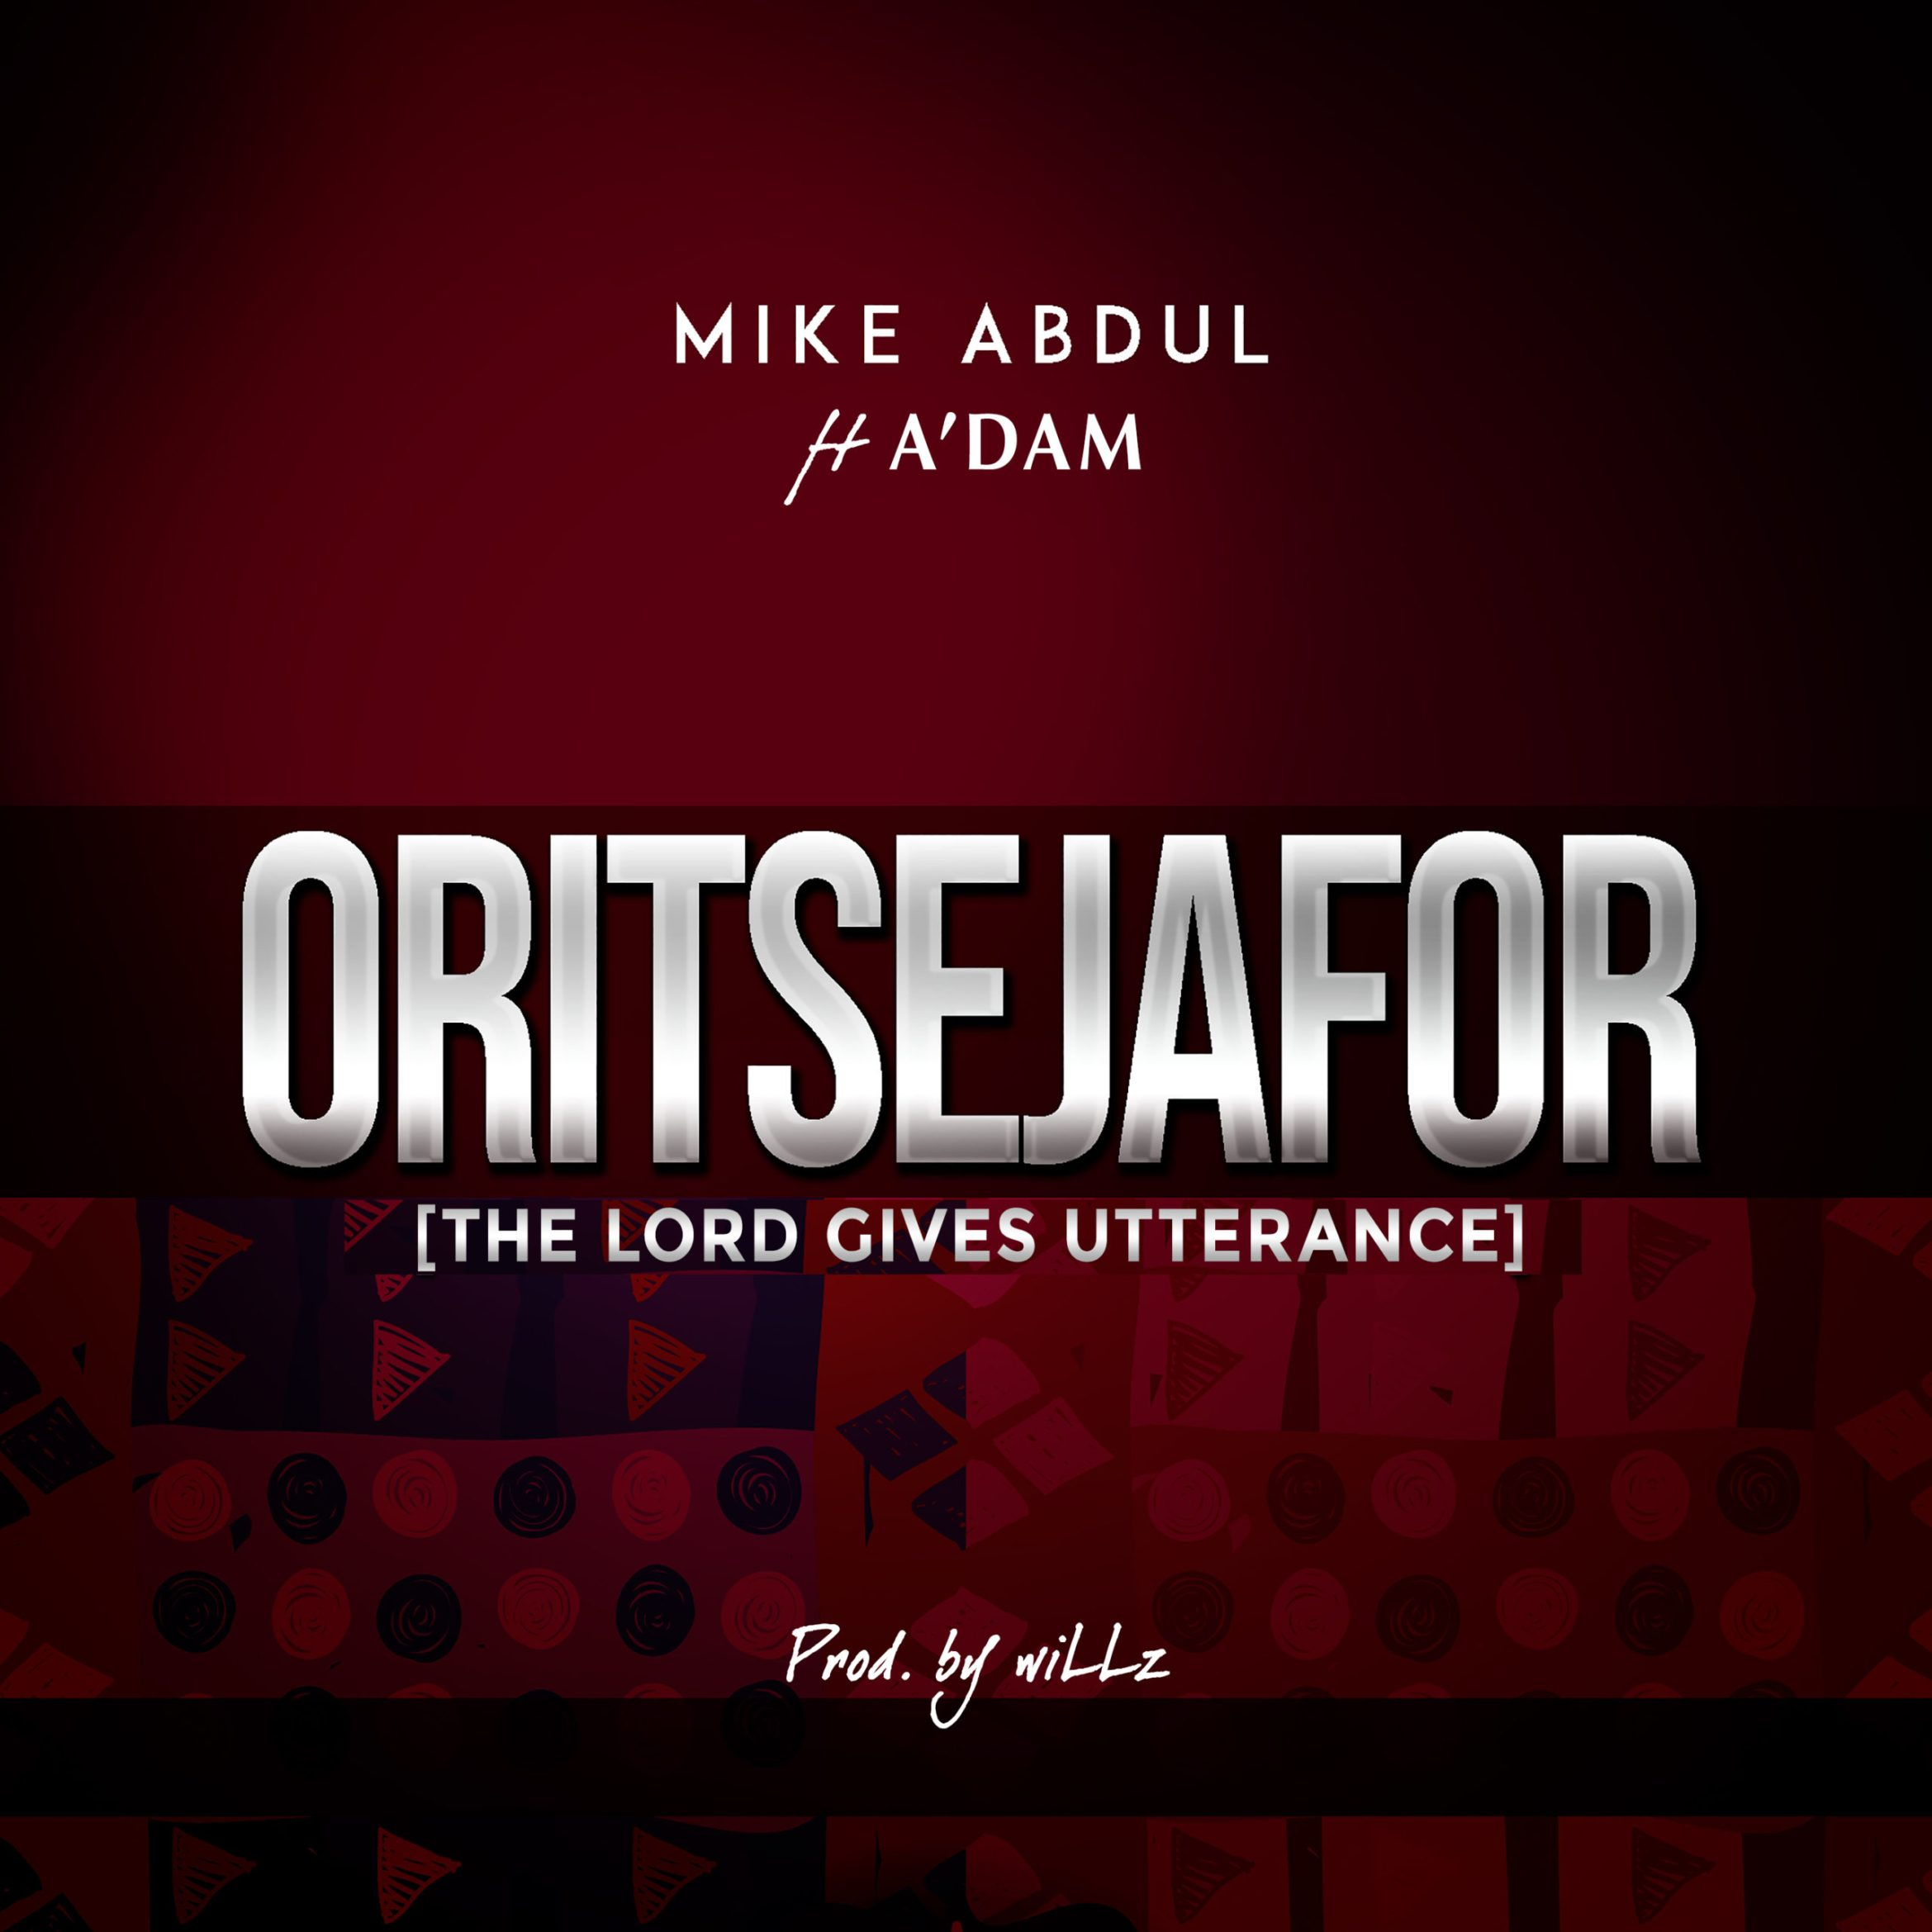 Oritsejafor-mike-scaled [MP3 DOWNLOAD] Oritsejafor – Mike Abdul Ft. A'dam